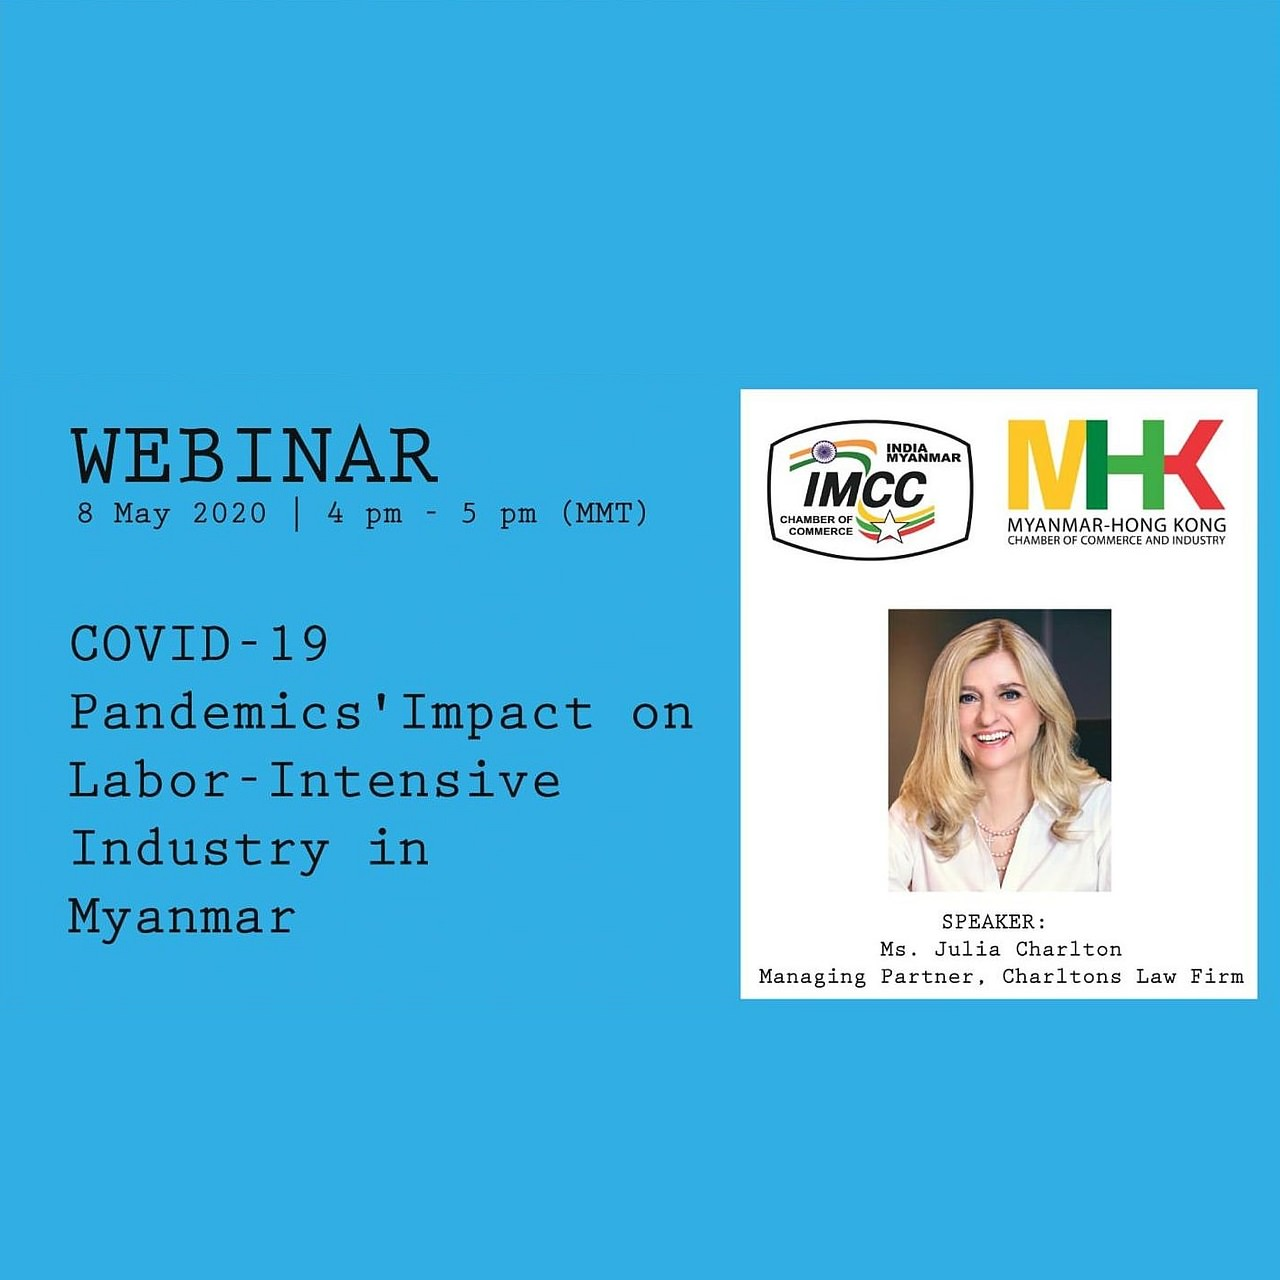 Webinar: COVID-19 Pandemics' Impact on Labour-Intensive Industry in Myanmar